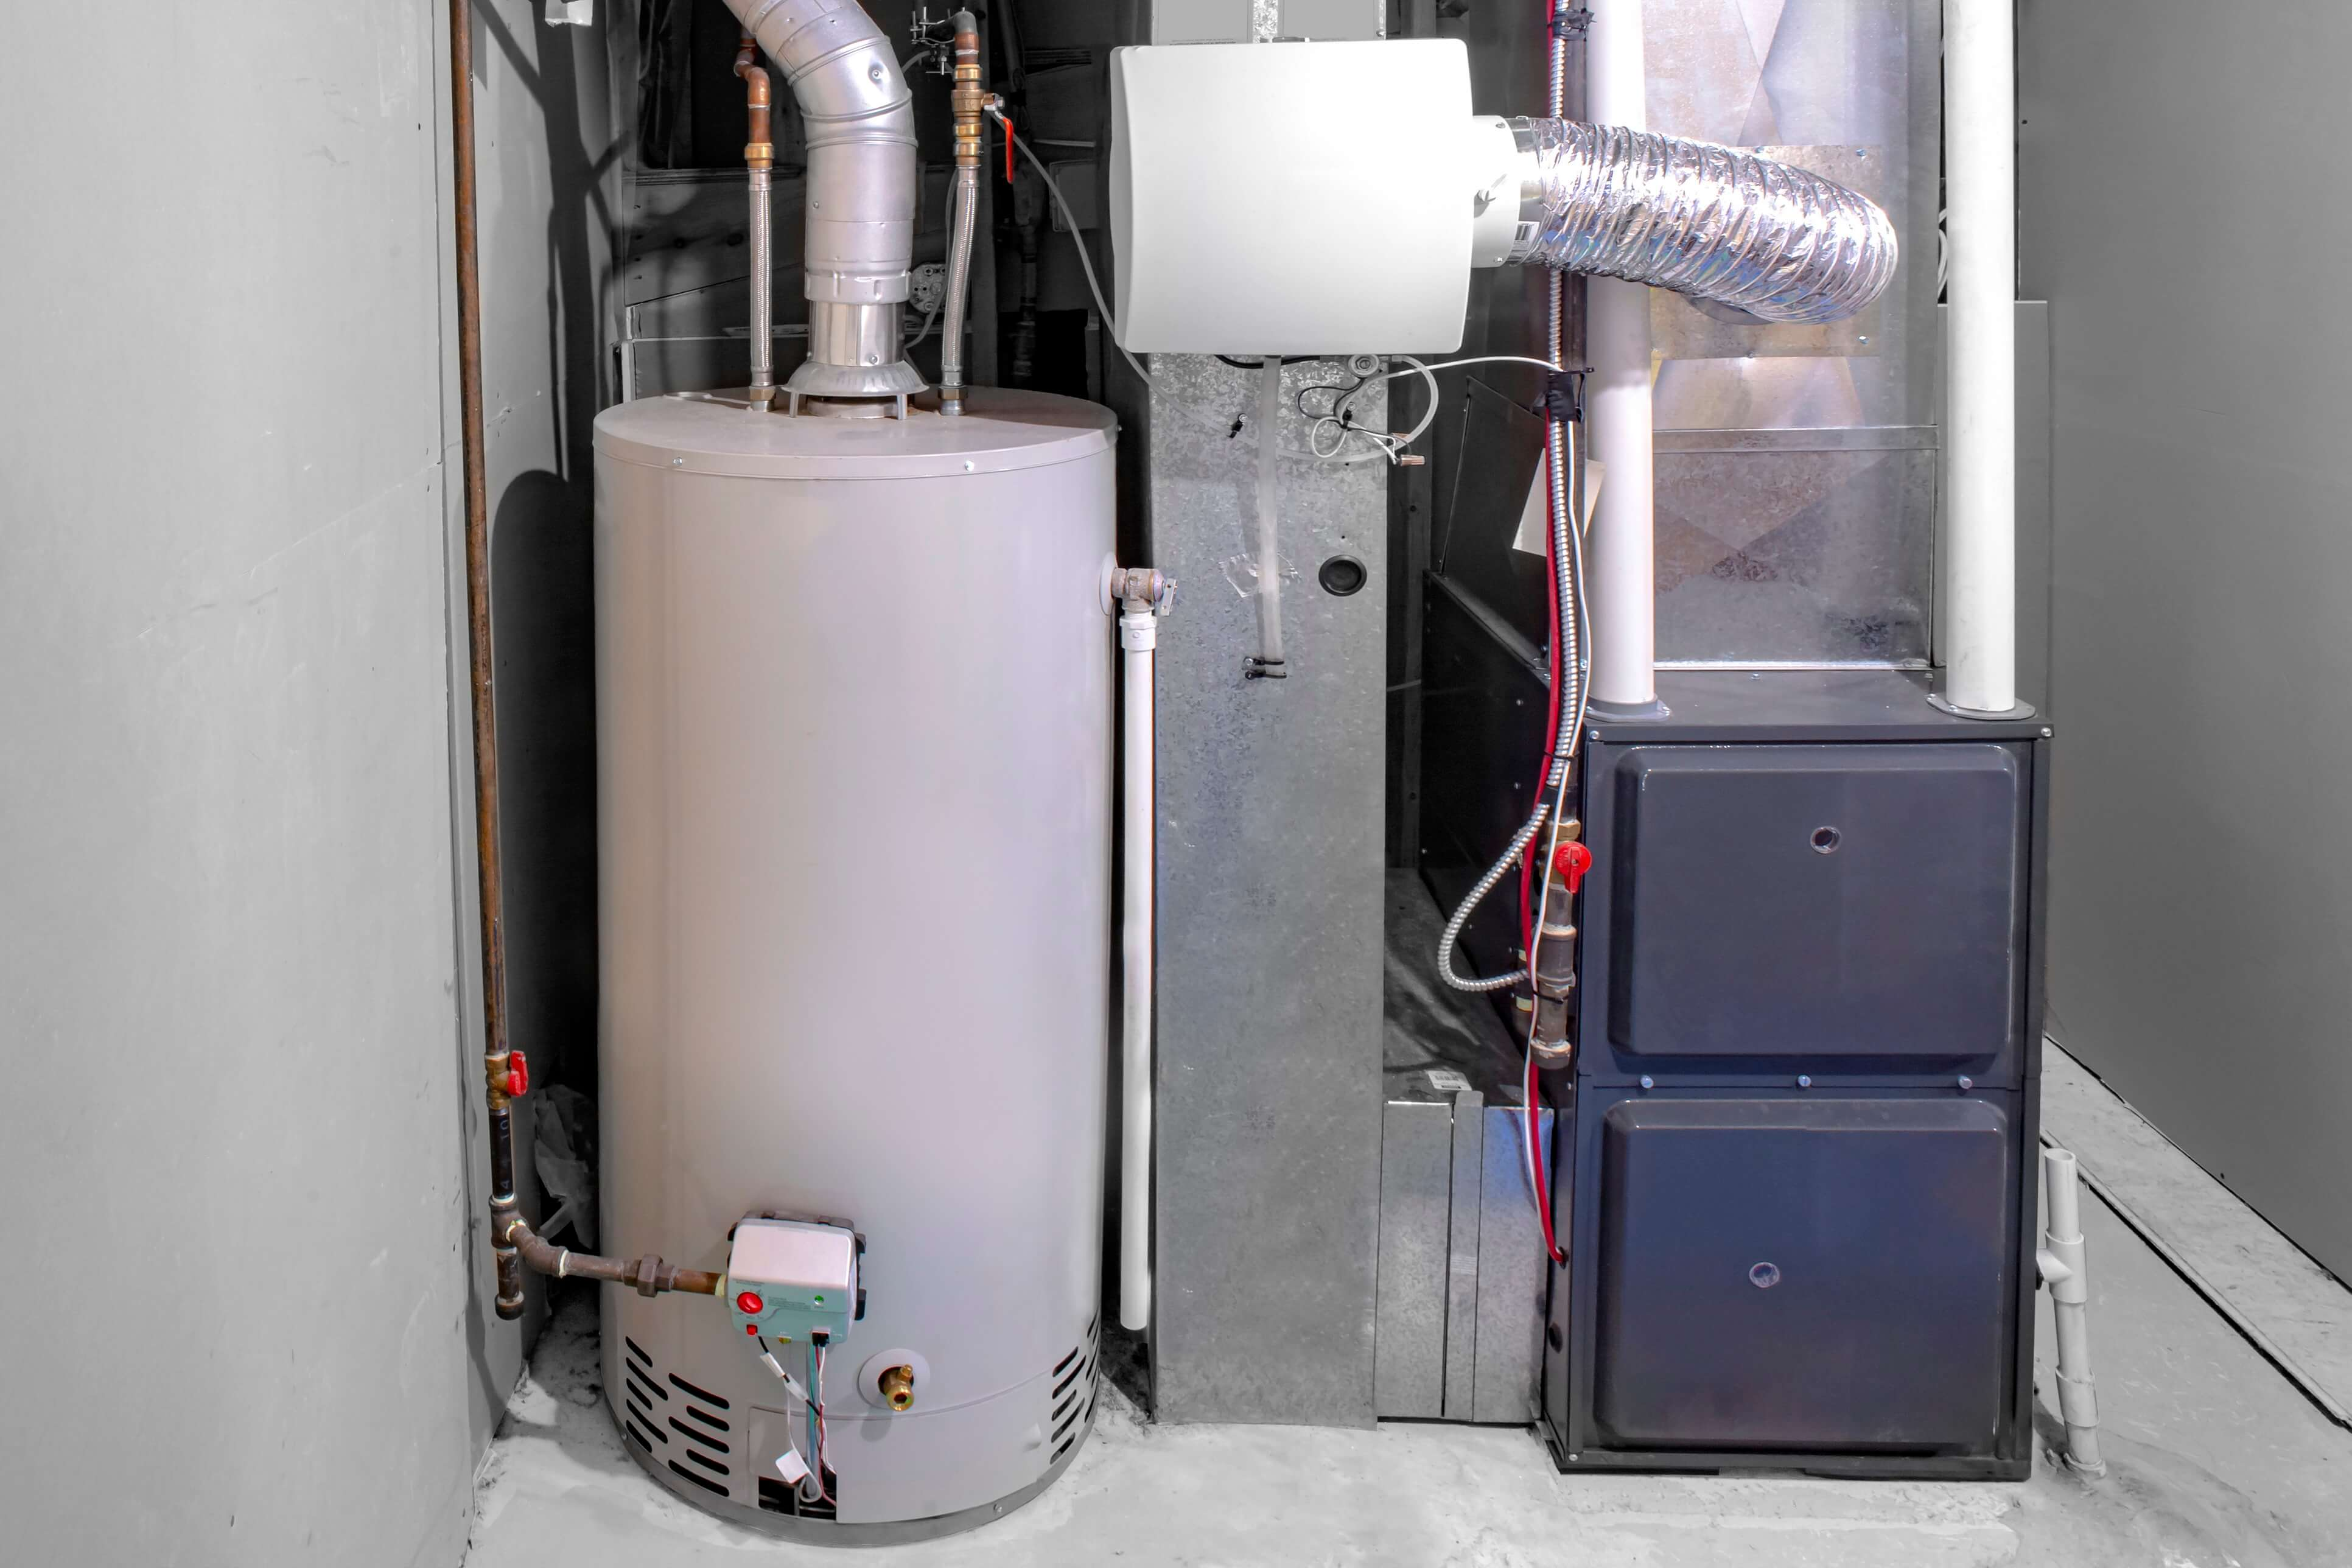 What You Need to Know About Financing Your Furnace Replacement or HVAC System Addition